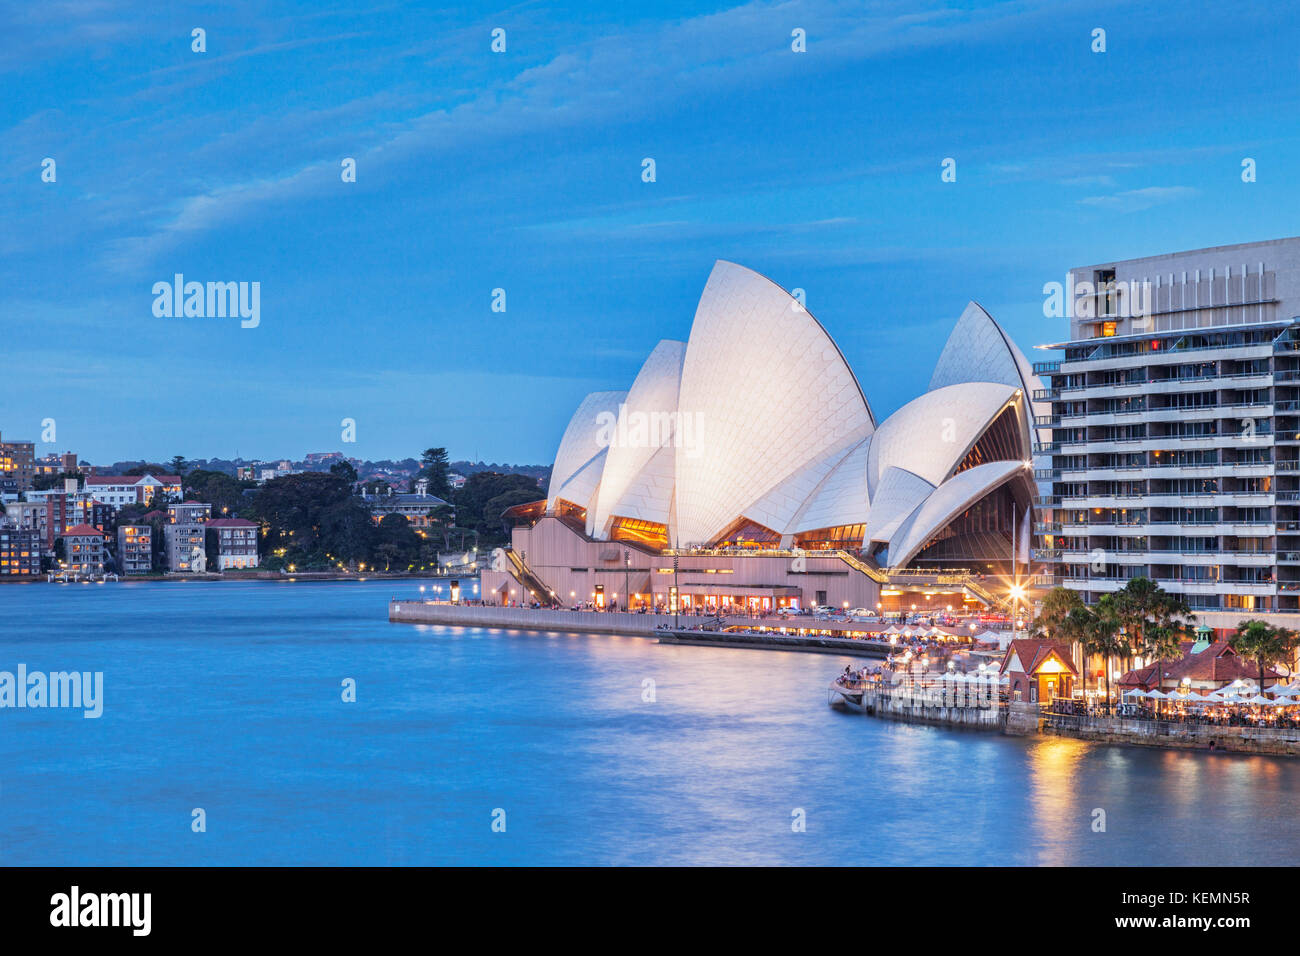 Sydney Opera House illuminated at twilight, the building beside it is known as The Toaster. - Stock Image